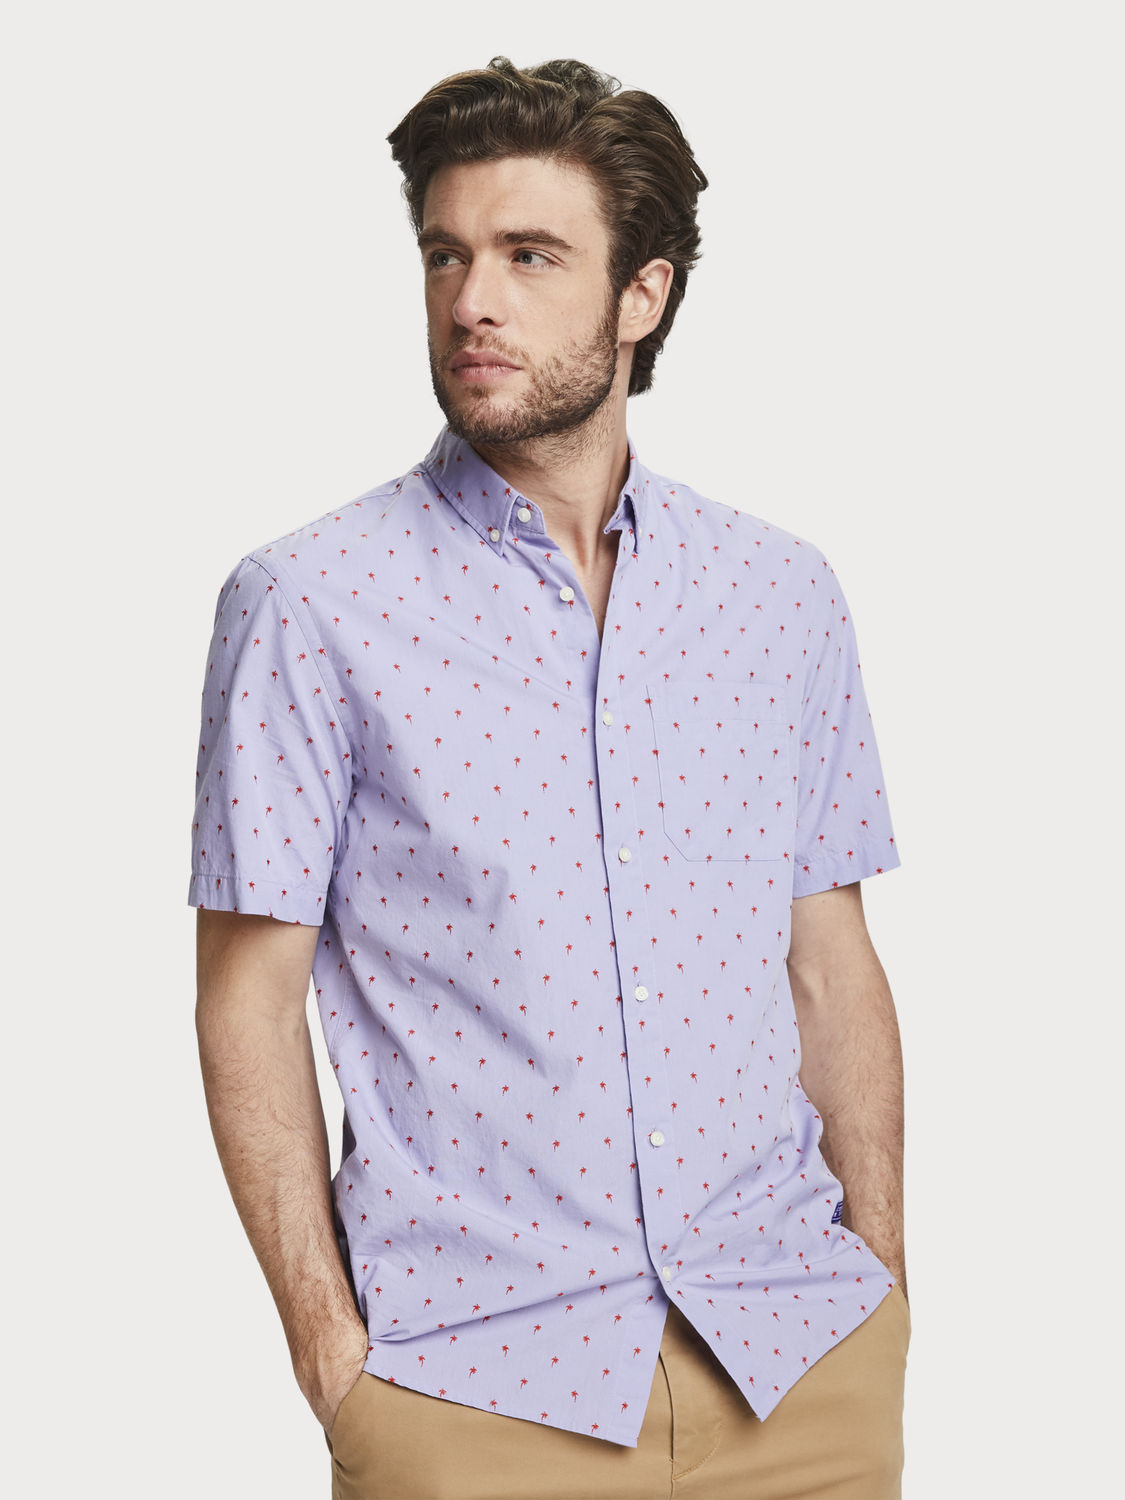 Men Fil coupé shirt | Regular fit